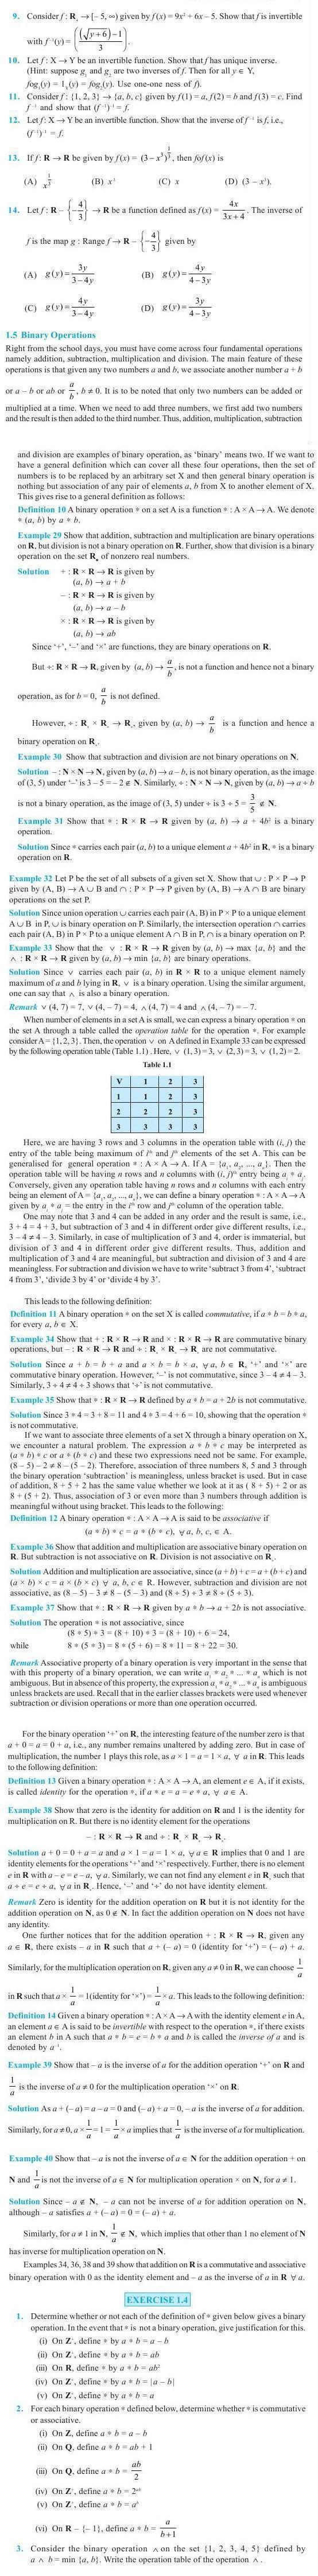 NCERT Class XII Maths Chapter 1 - Relations and Functions